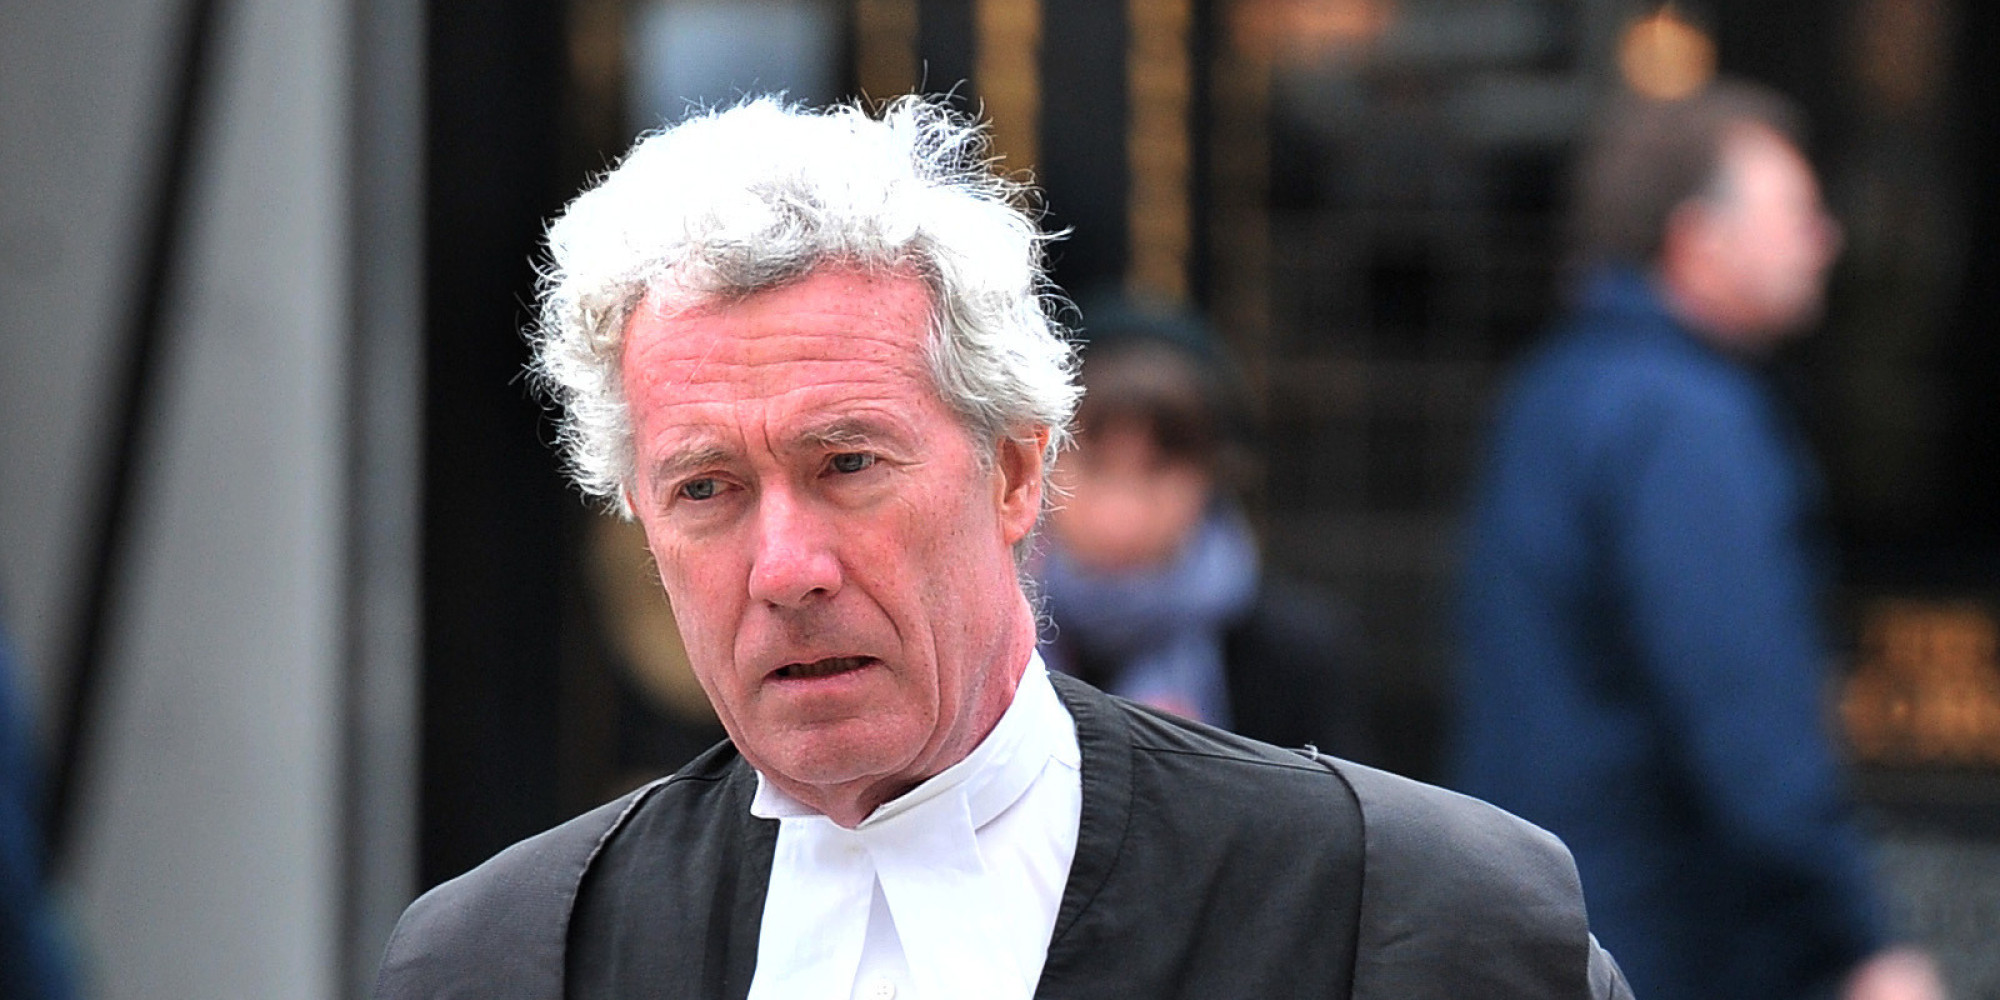 lord sumption - photo #16